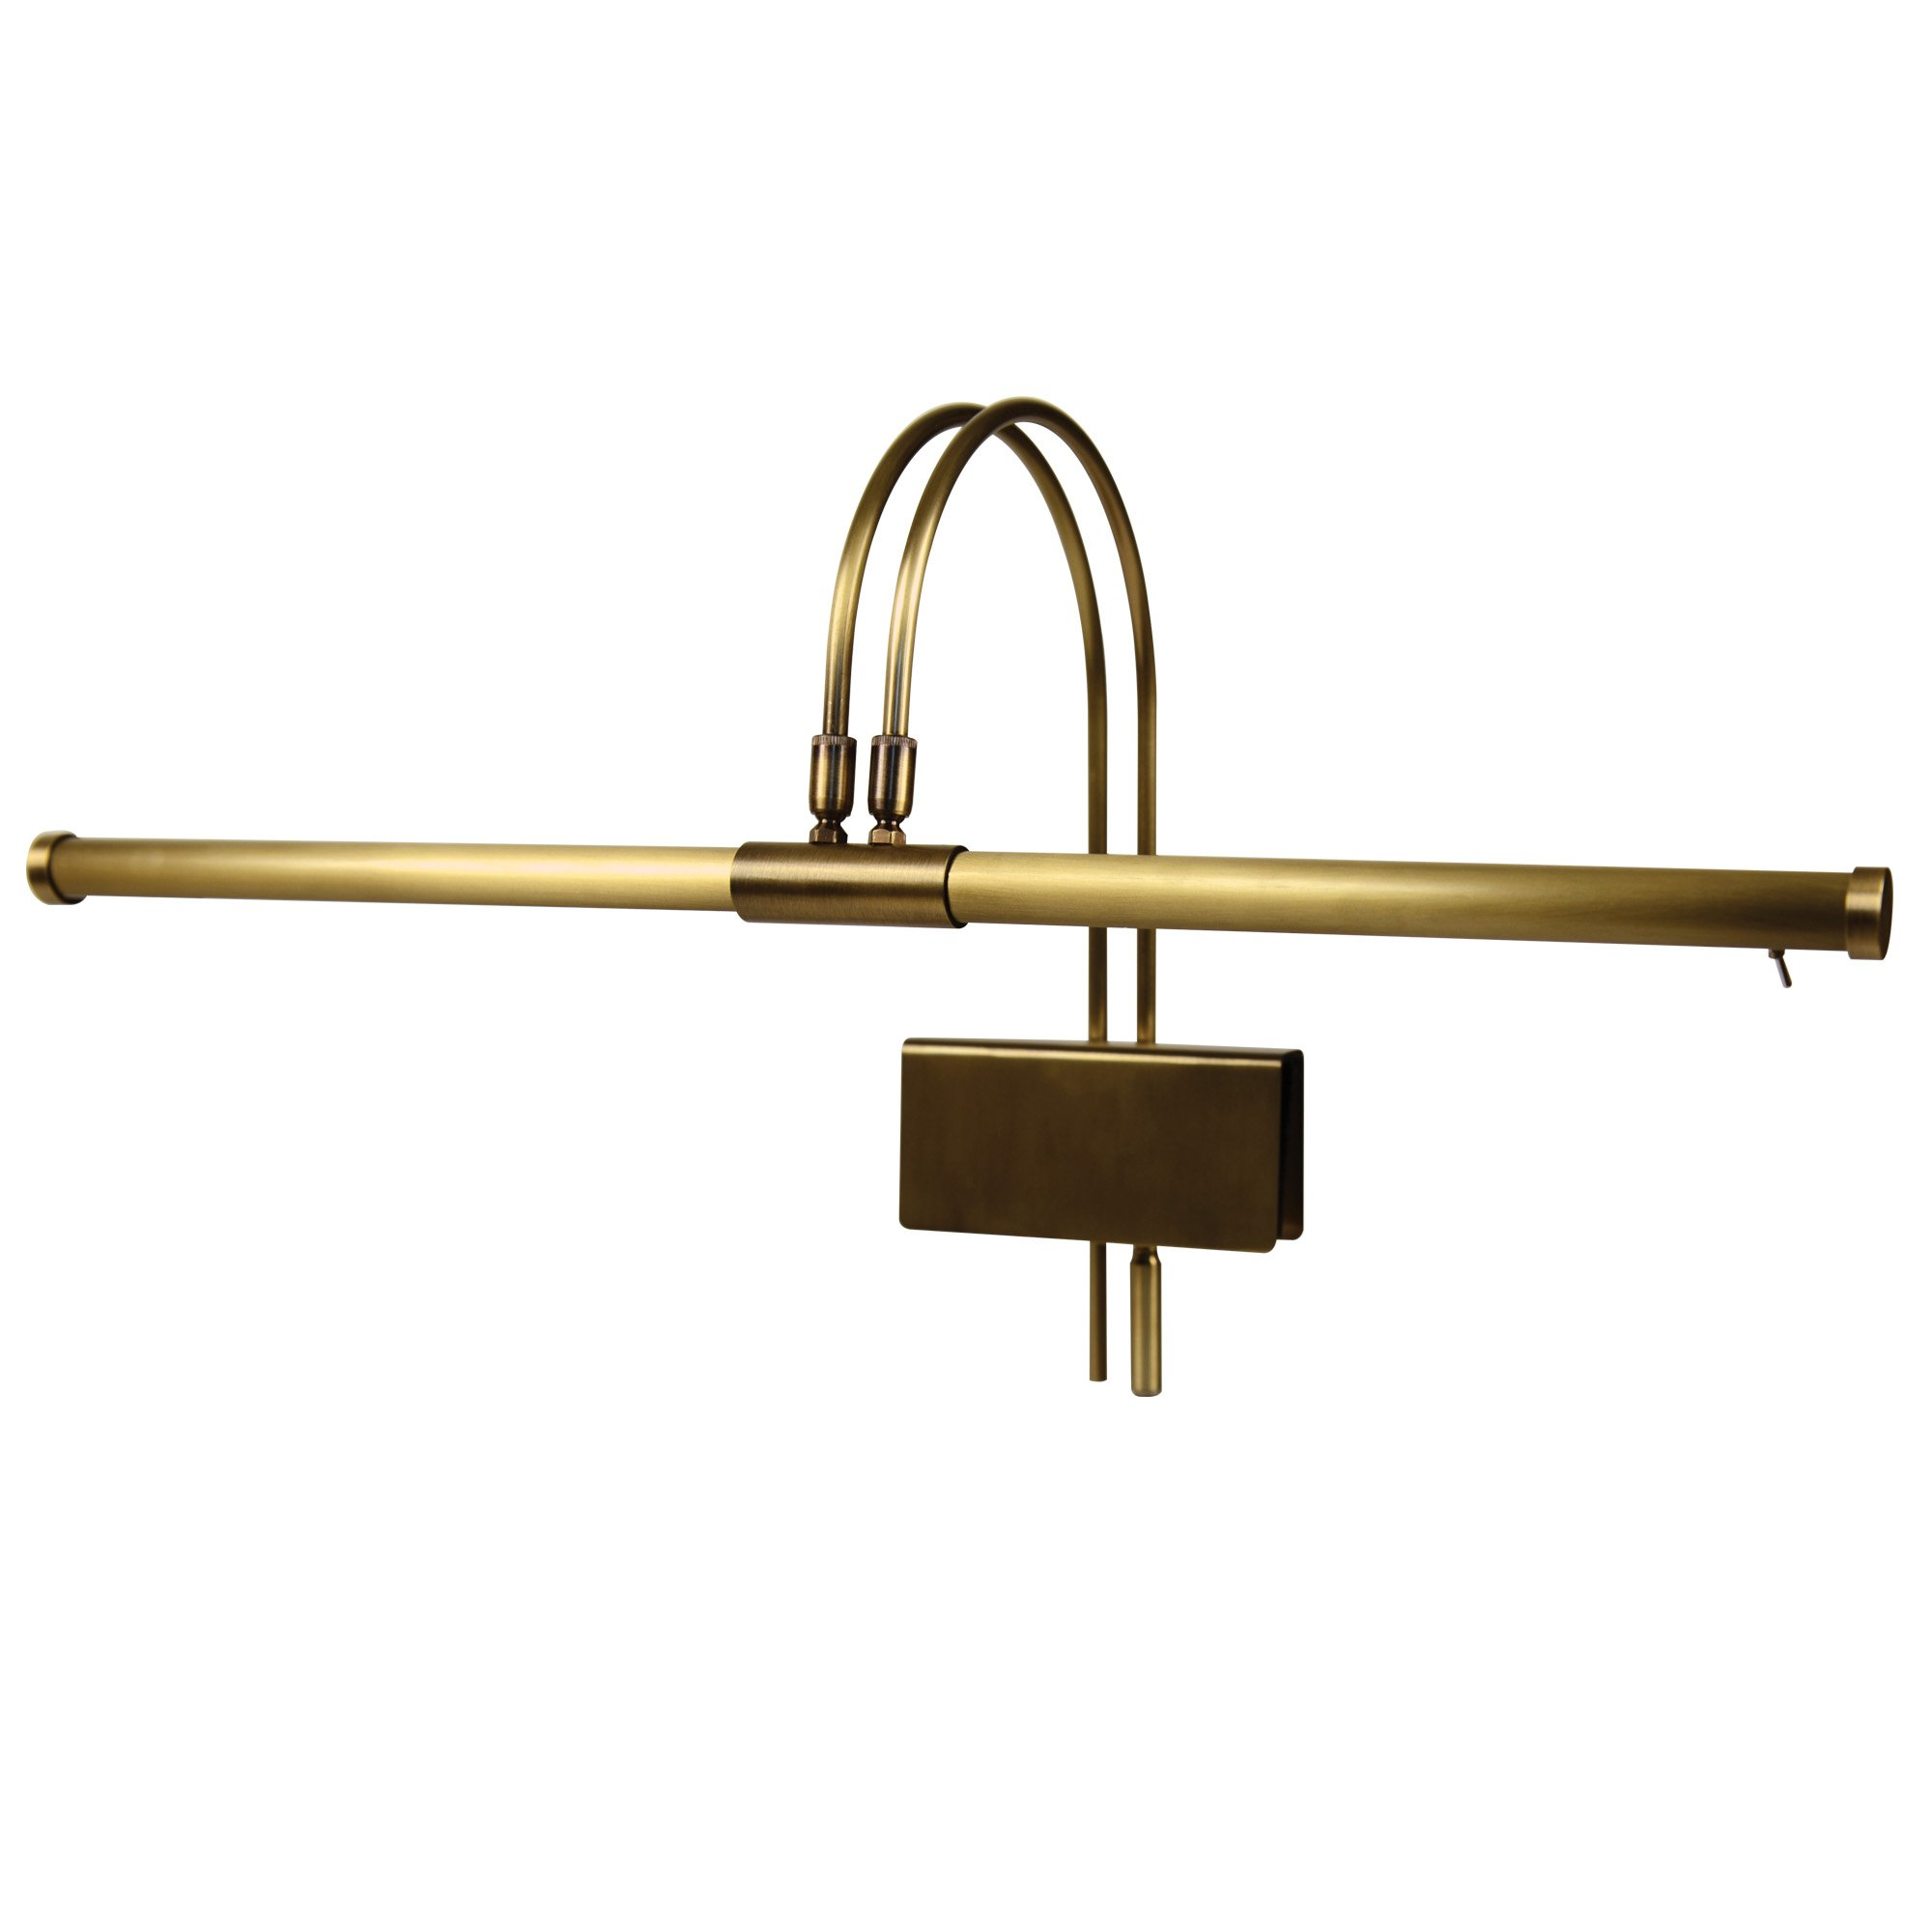 Cocoweb 22'' Grand Piano Lamp, LED, Adjustable, Quality Lighting in Antique Brass with Plug-in Adapter - GPLED22ABD